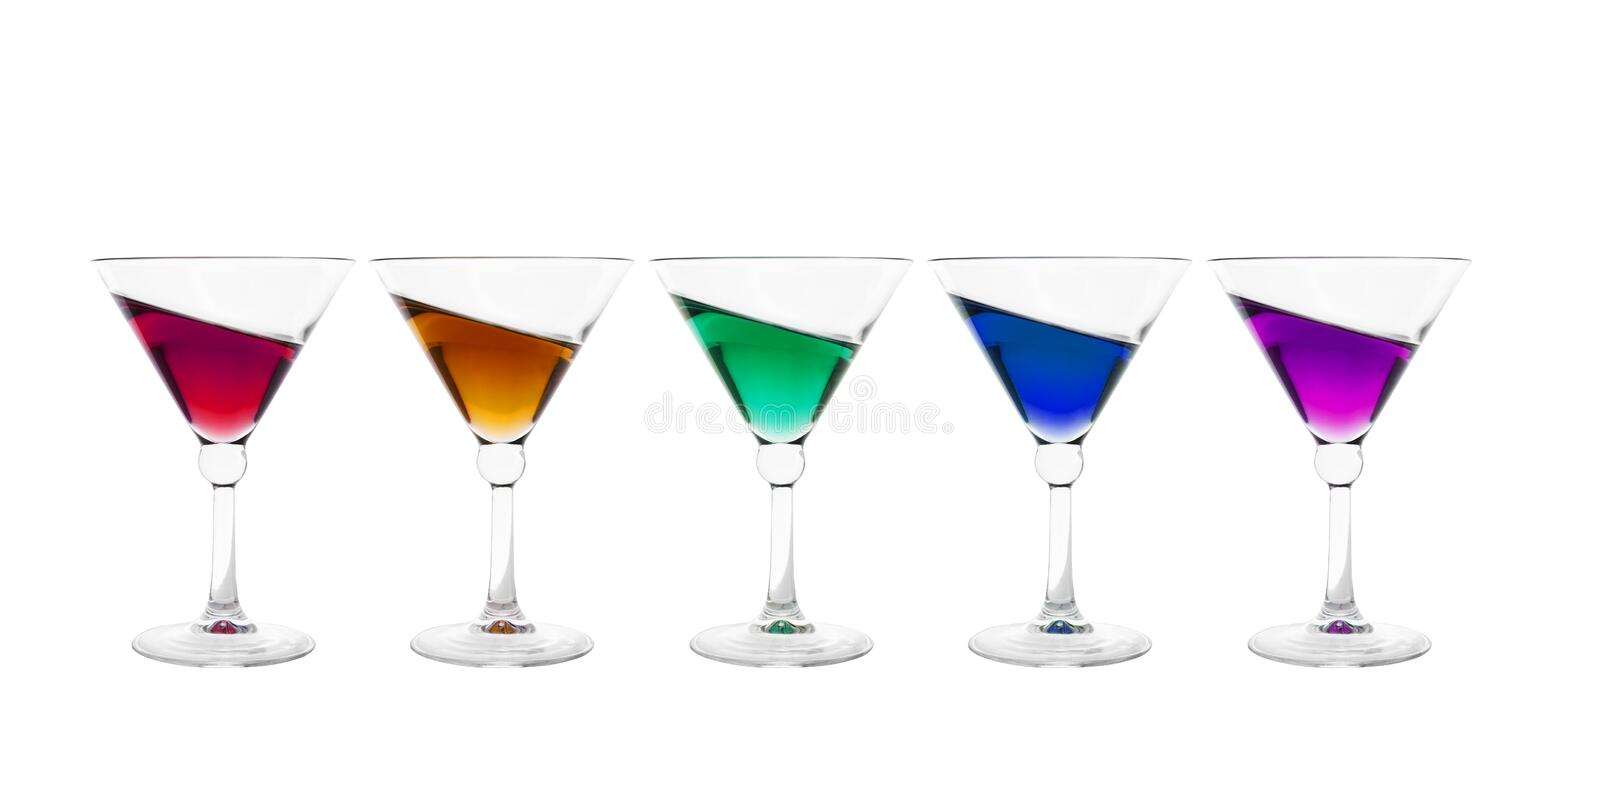 Collection of cocktail glasses filled with colorful inclined wine drink. Isolated on white background royalty free stock images